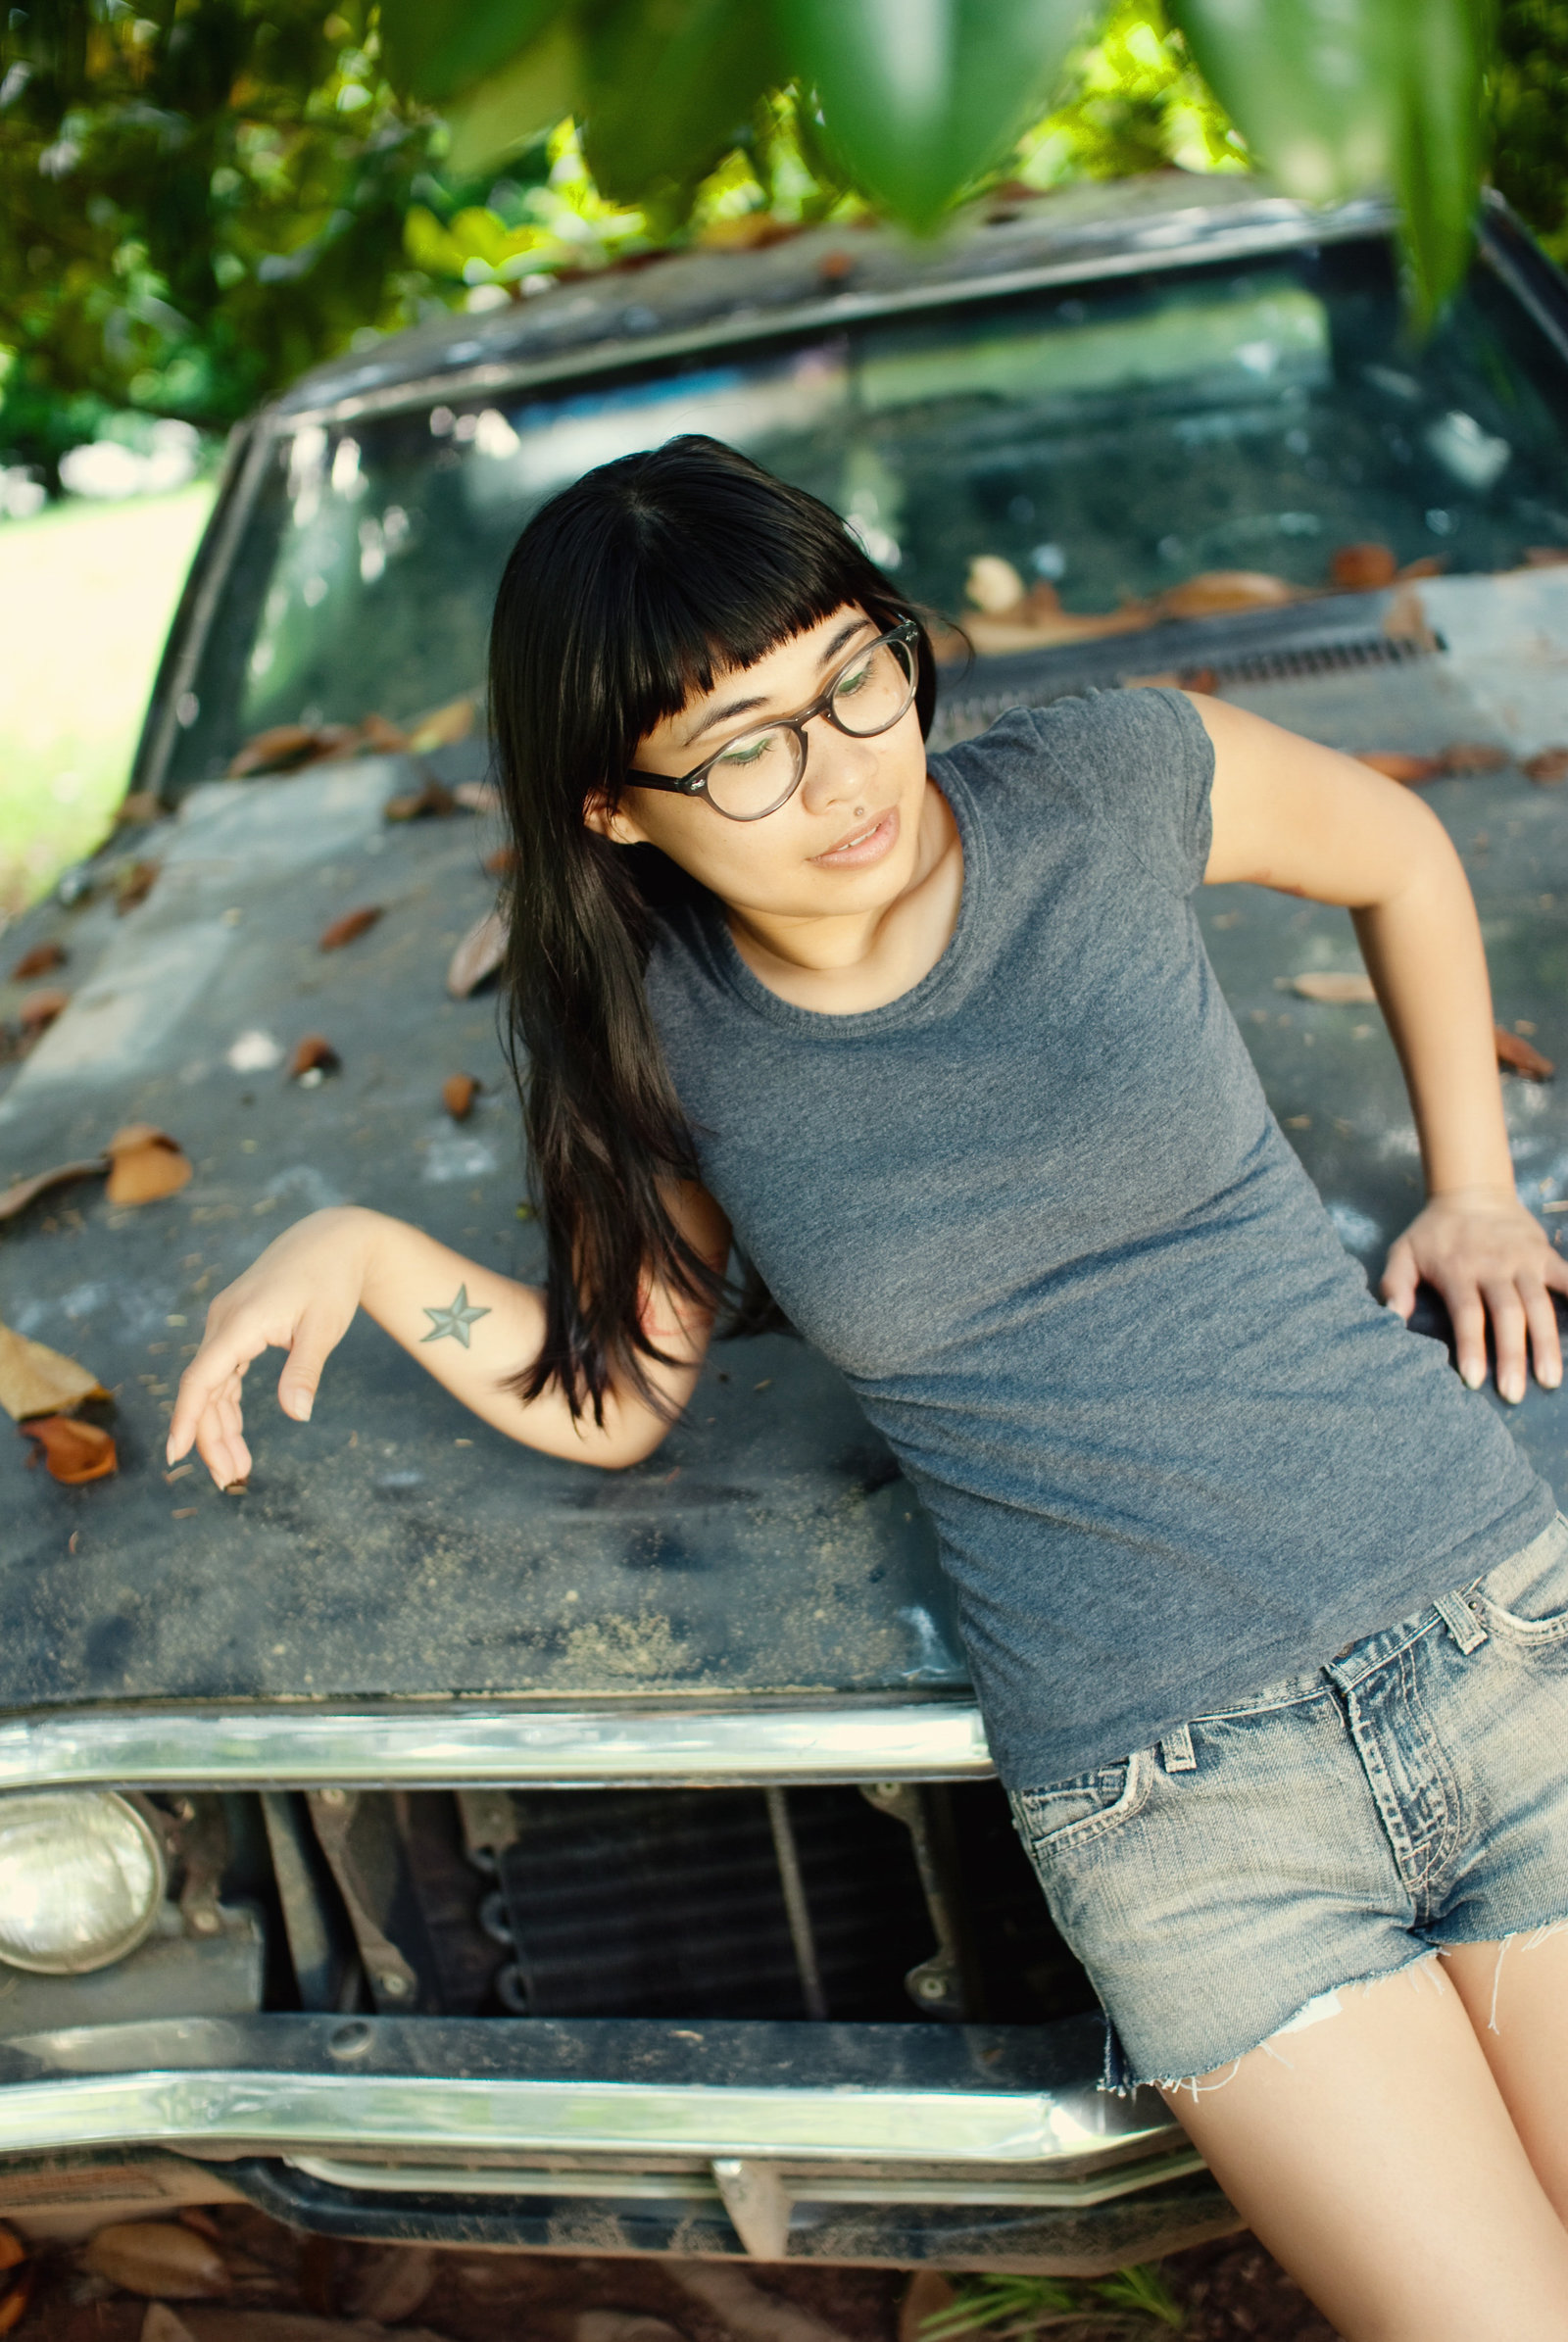 a girl leans against an old vintage car